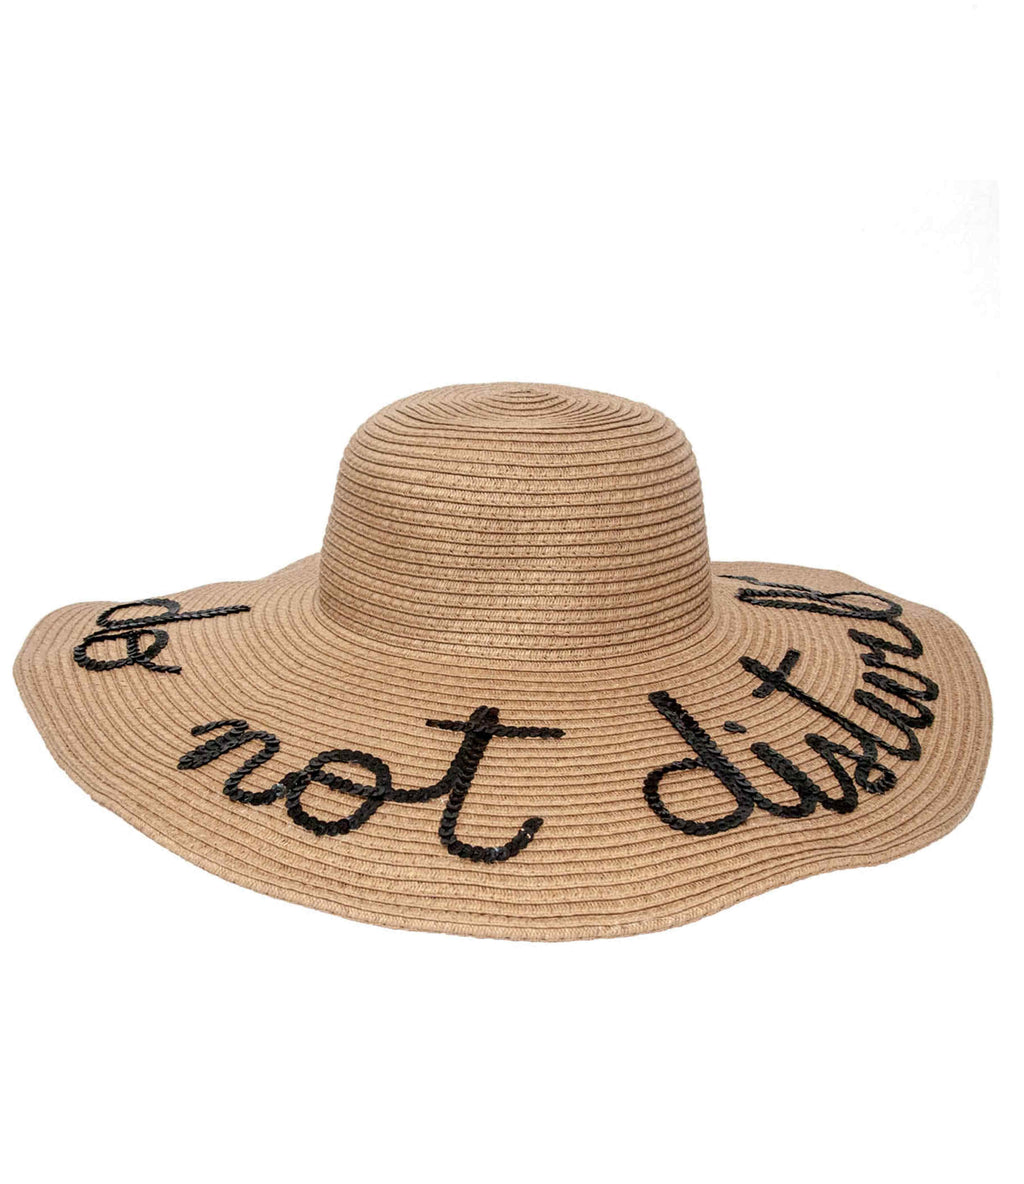 Custom Wide Brim Sequin Message Floppy Sun Hat